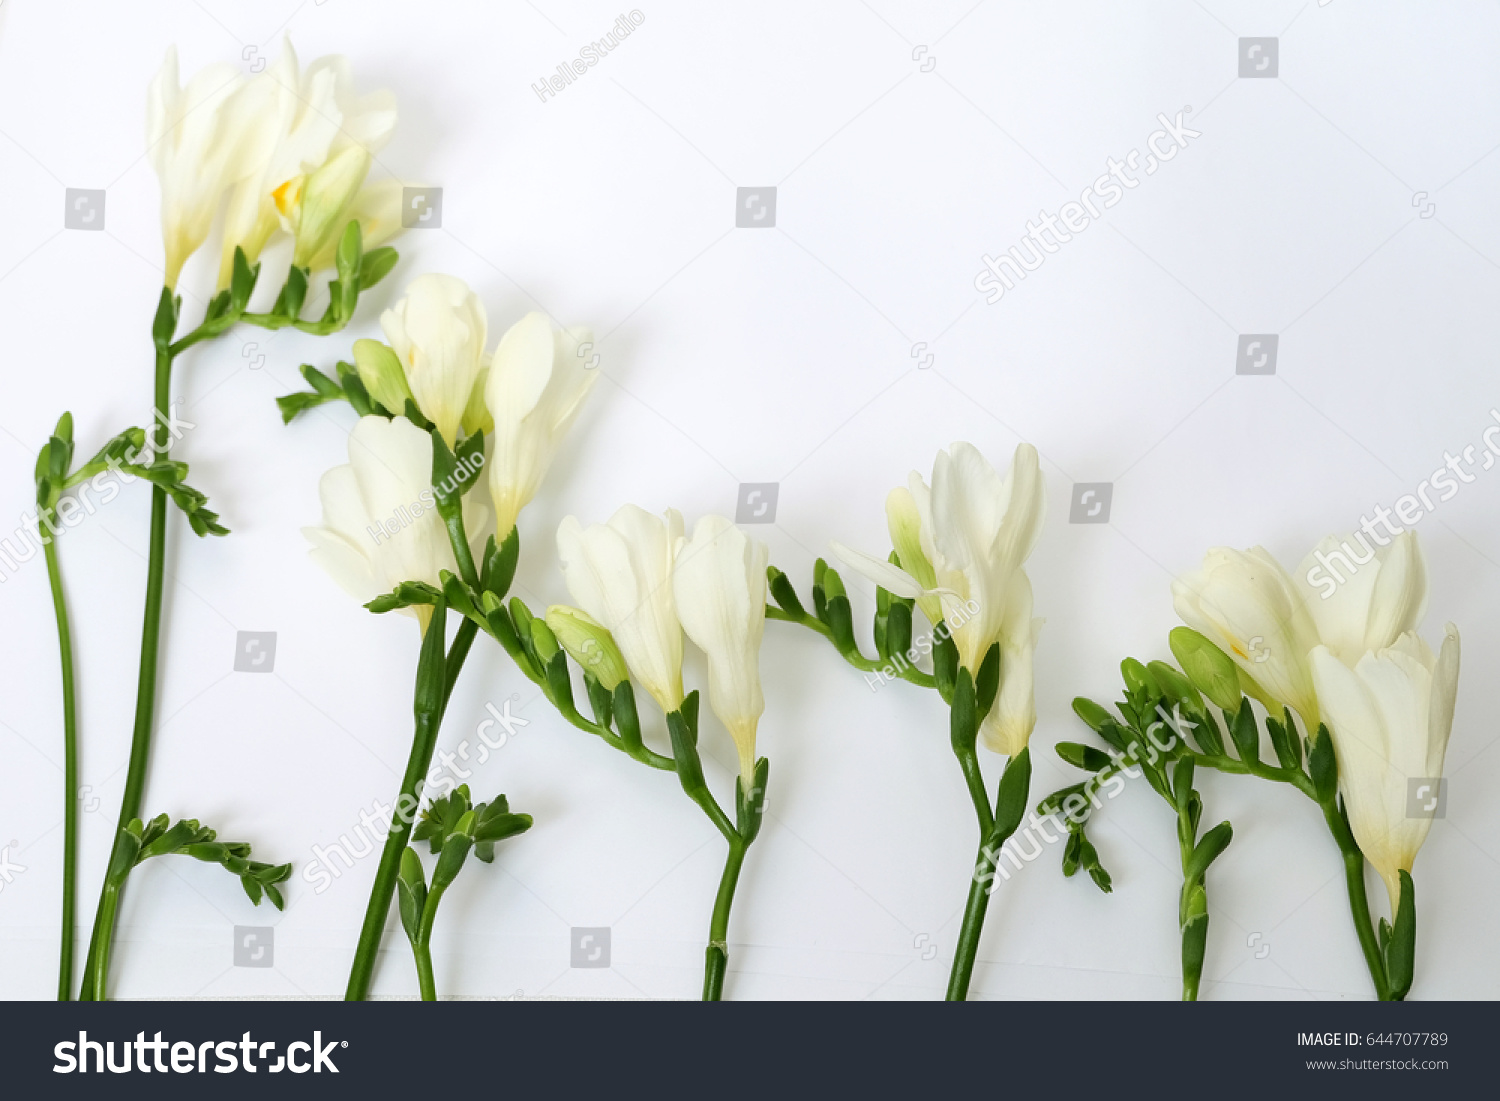 White Freesia Flower Green Buds Stock Photo Download Now 644707789